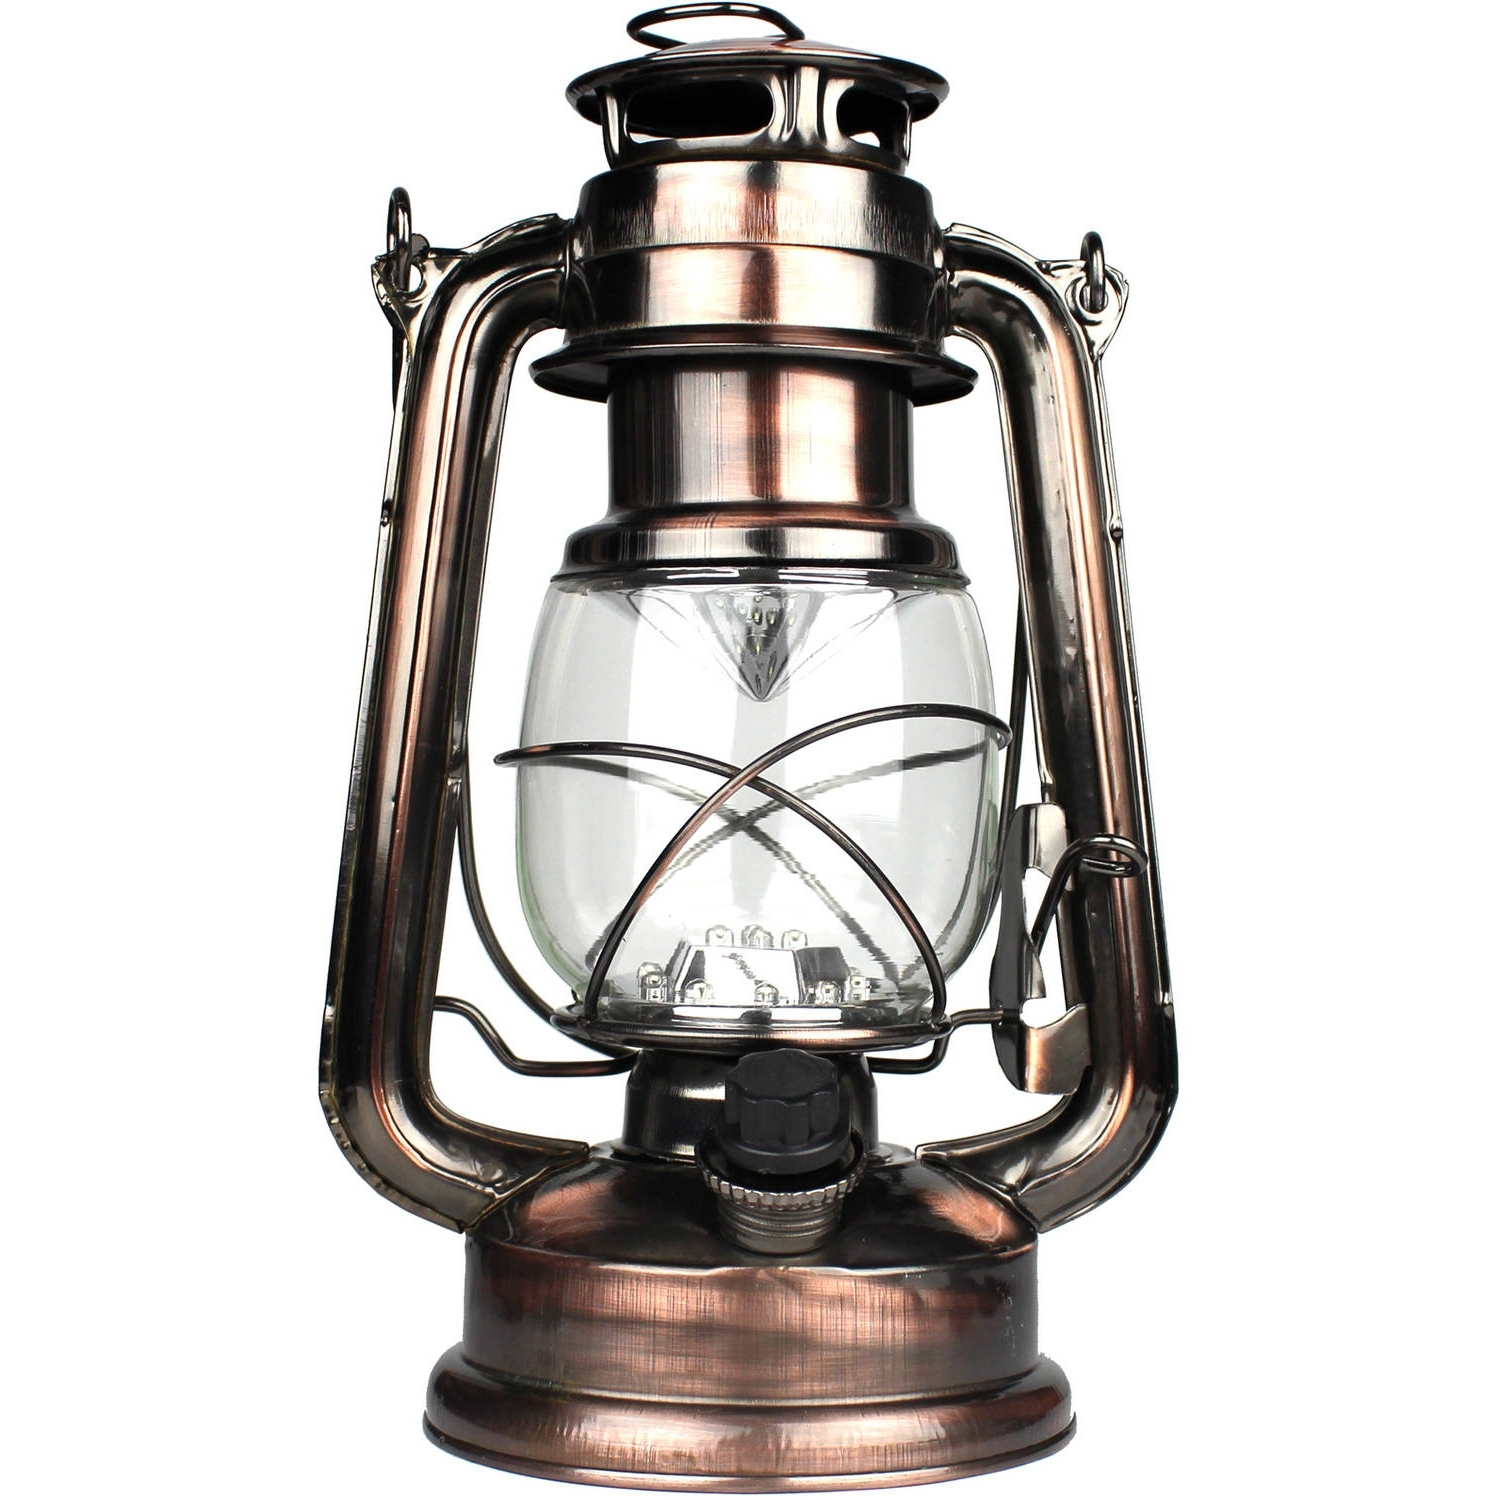 Walmart Outdoor Lanterns Intended For Famous Coleman 4D Led Camping Lantern – Walmart (View 15 of 20)